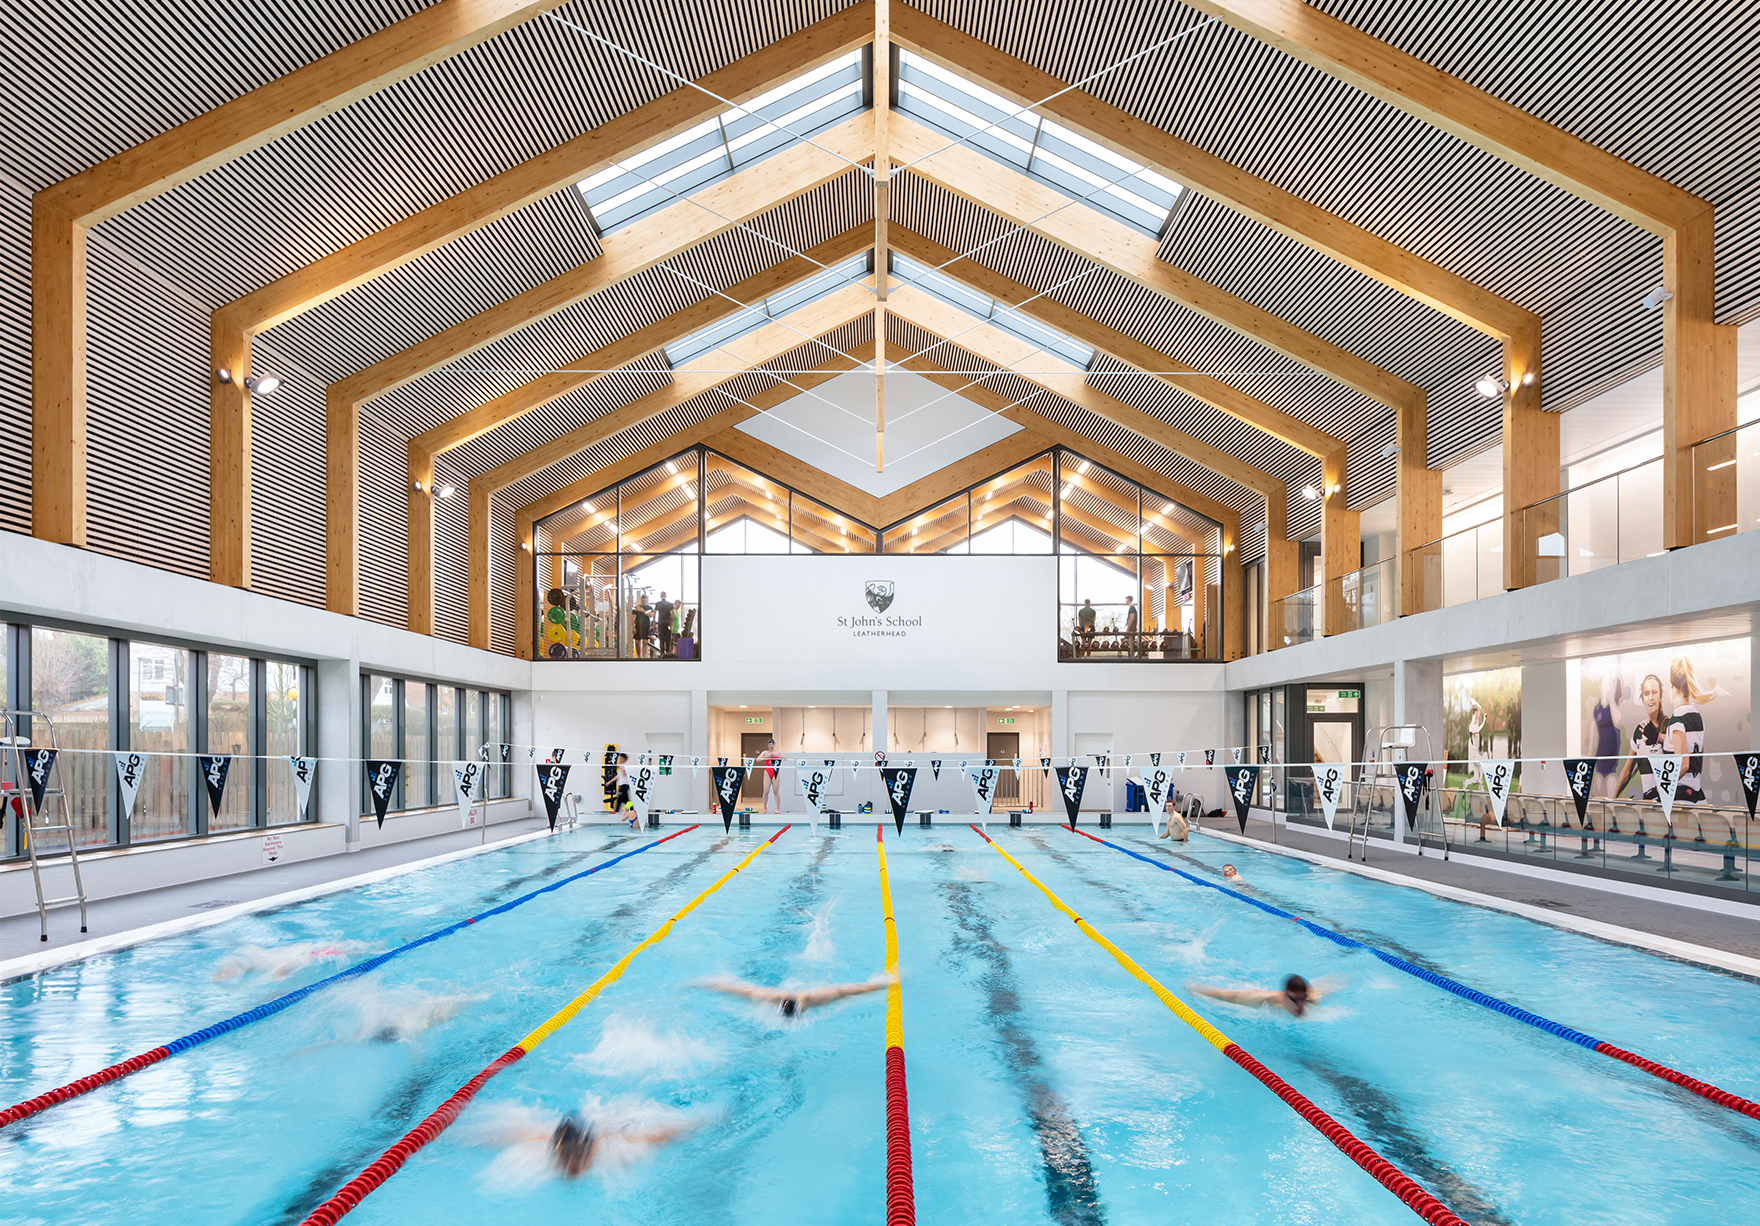 St Johns School Sports Centre Faulknerbrowns Architects Education Sport Pool Hall Towards Gym Lh